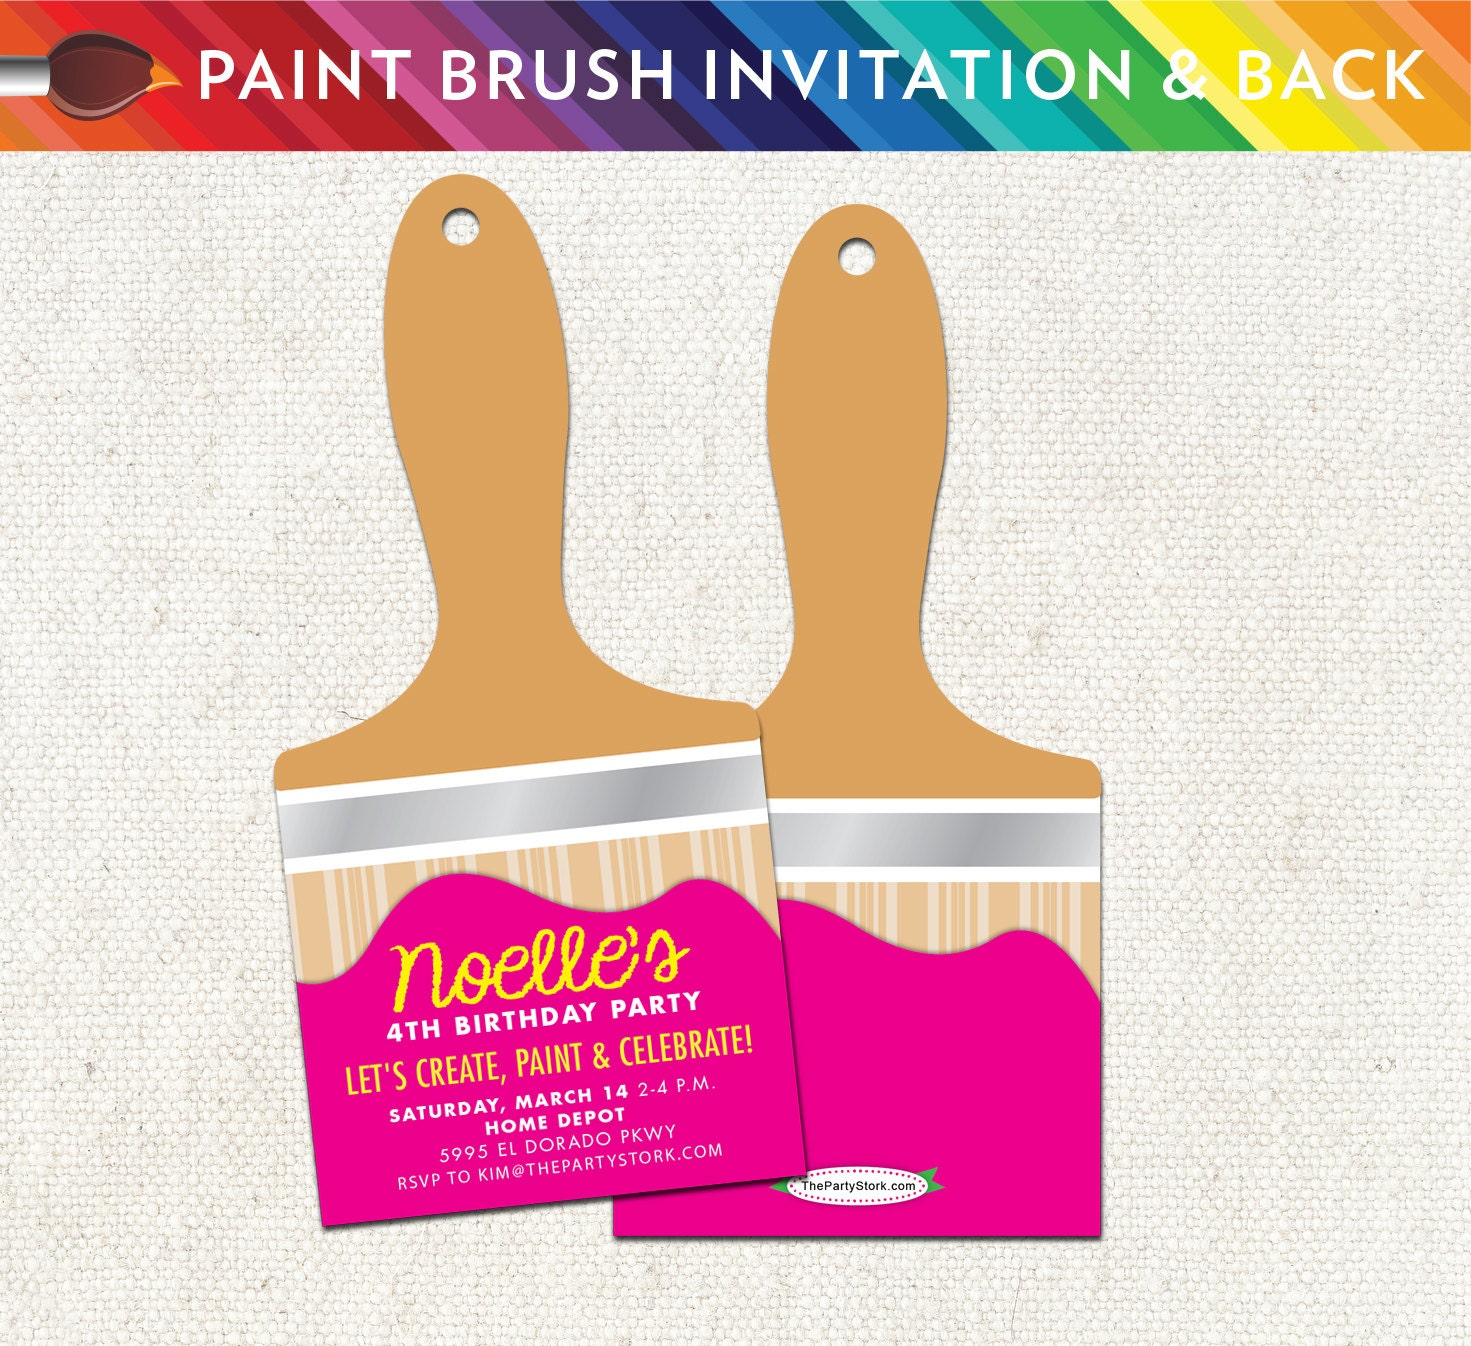 Art Paint Brush Party Invitation: Unique Printable Birthday